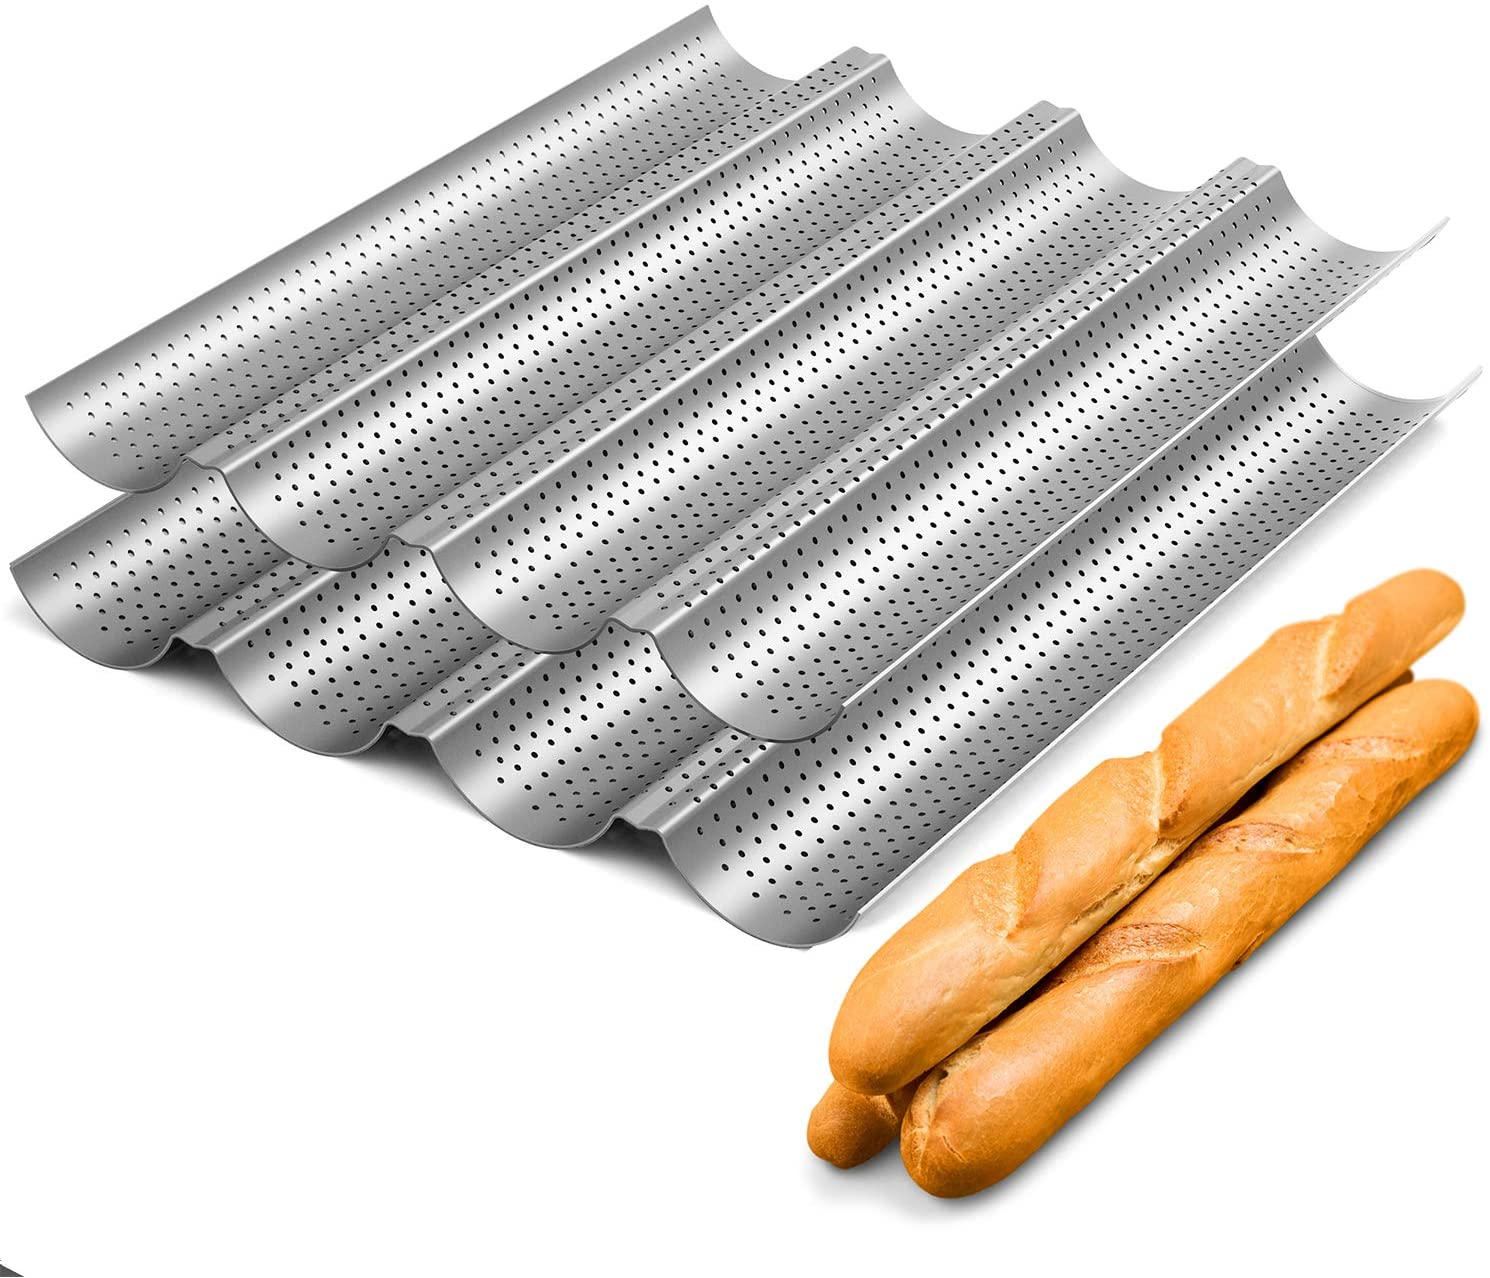 Nonstick Perforated Baguette Pan 15 x 13 for French Bread Baking 4 Wave Loaves Loaf Bake Mold Toast Cooking Bakers Molding 4 Gutter Oven Toaster Pan Cloche Waves Silver Steel Tray